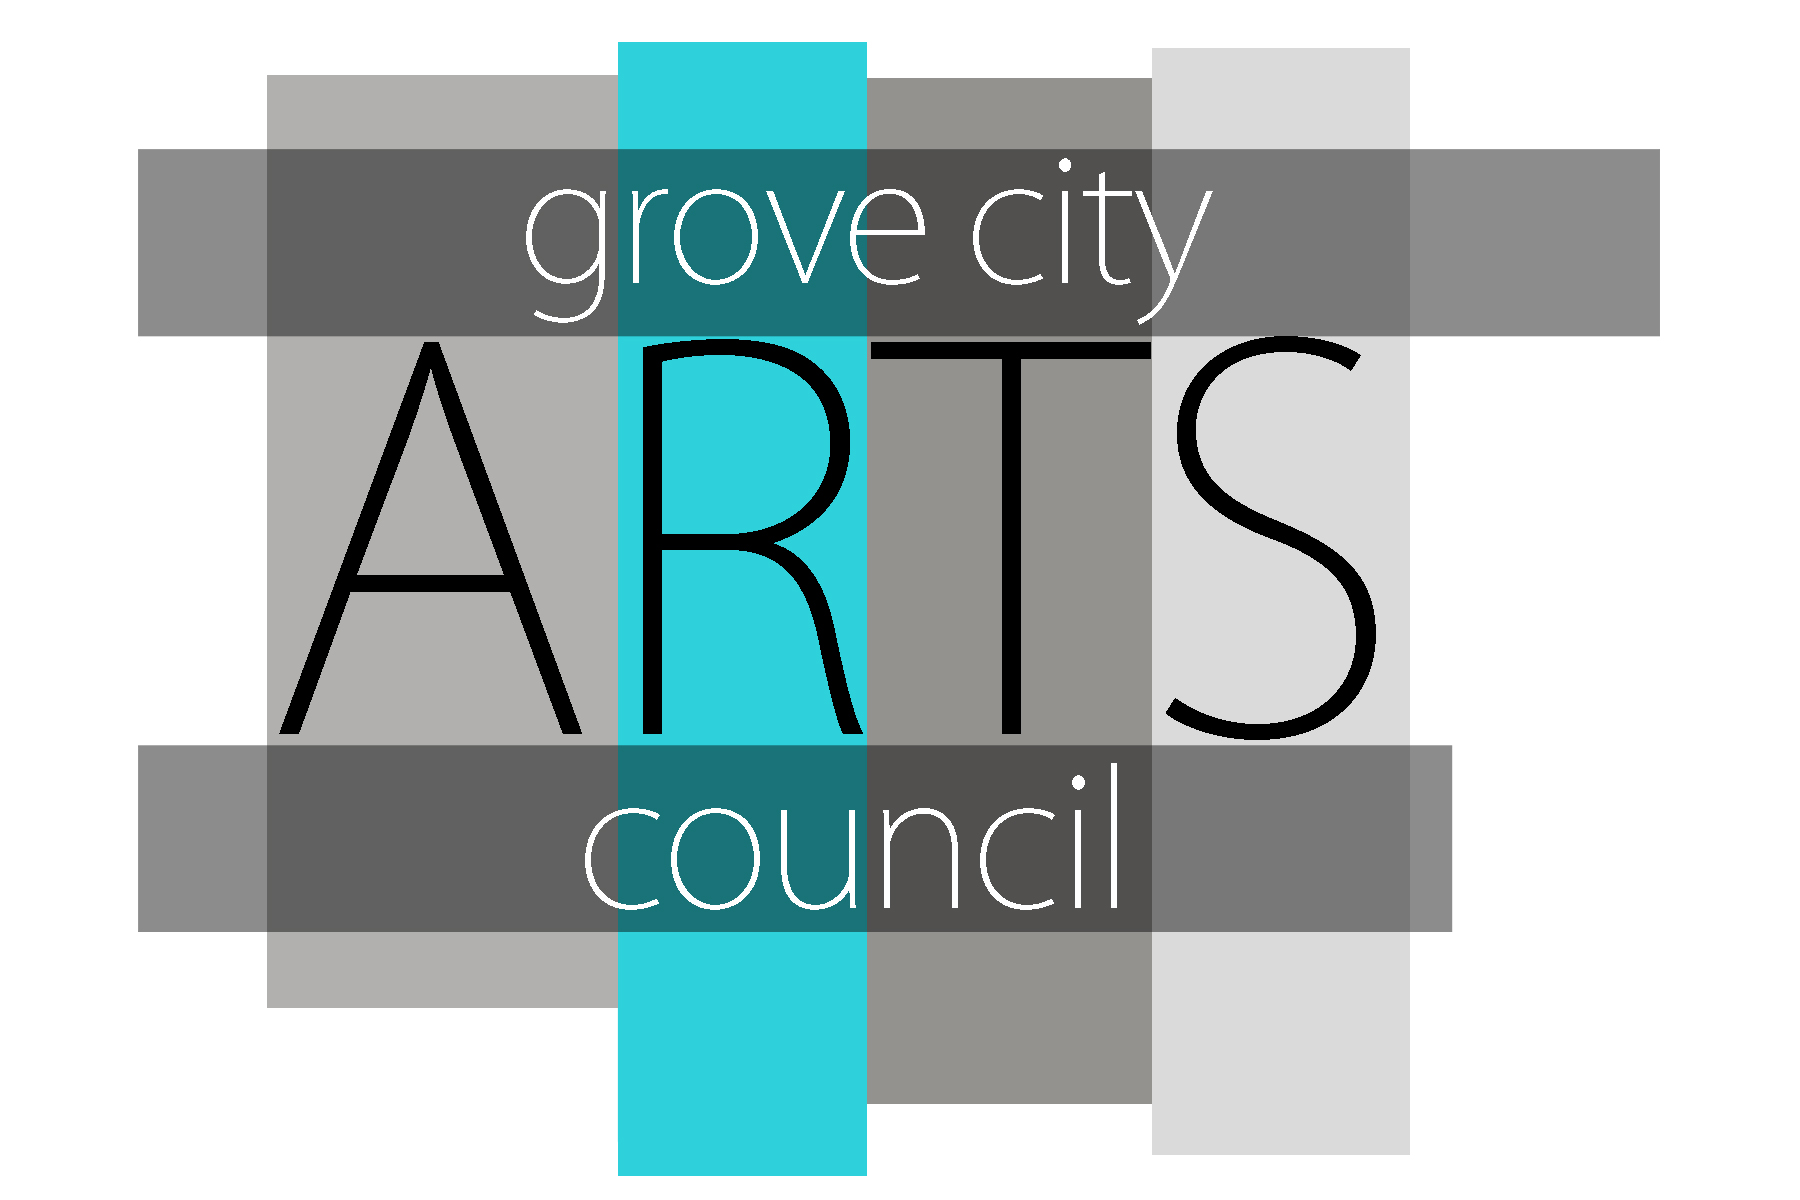 grove city arts council | grove city, pennsylvaniacouncil grove city